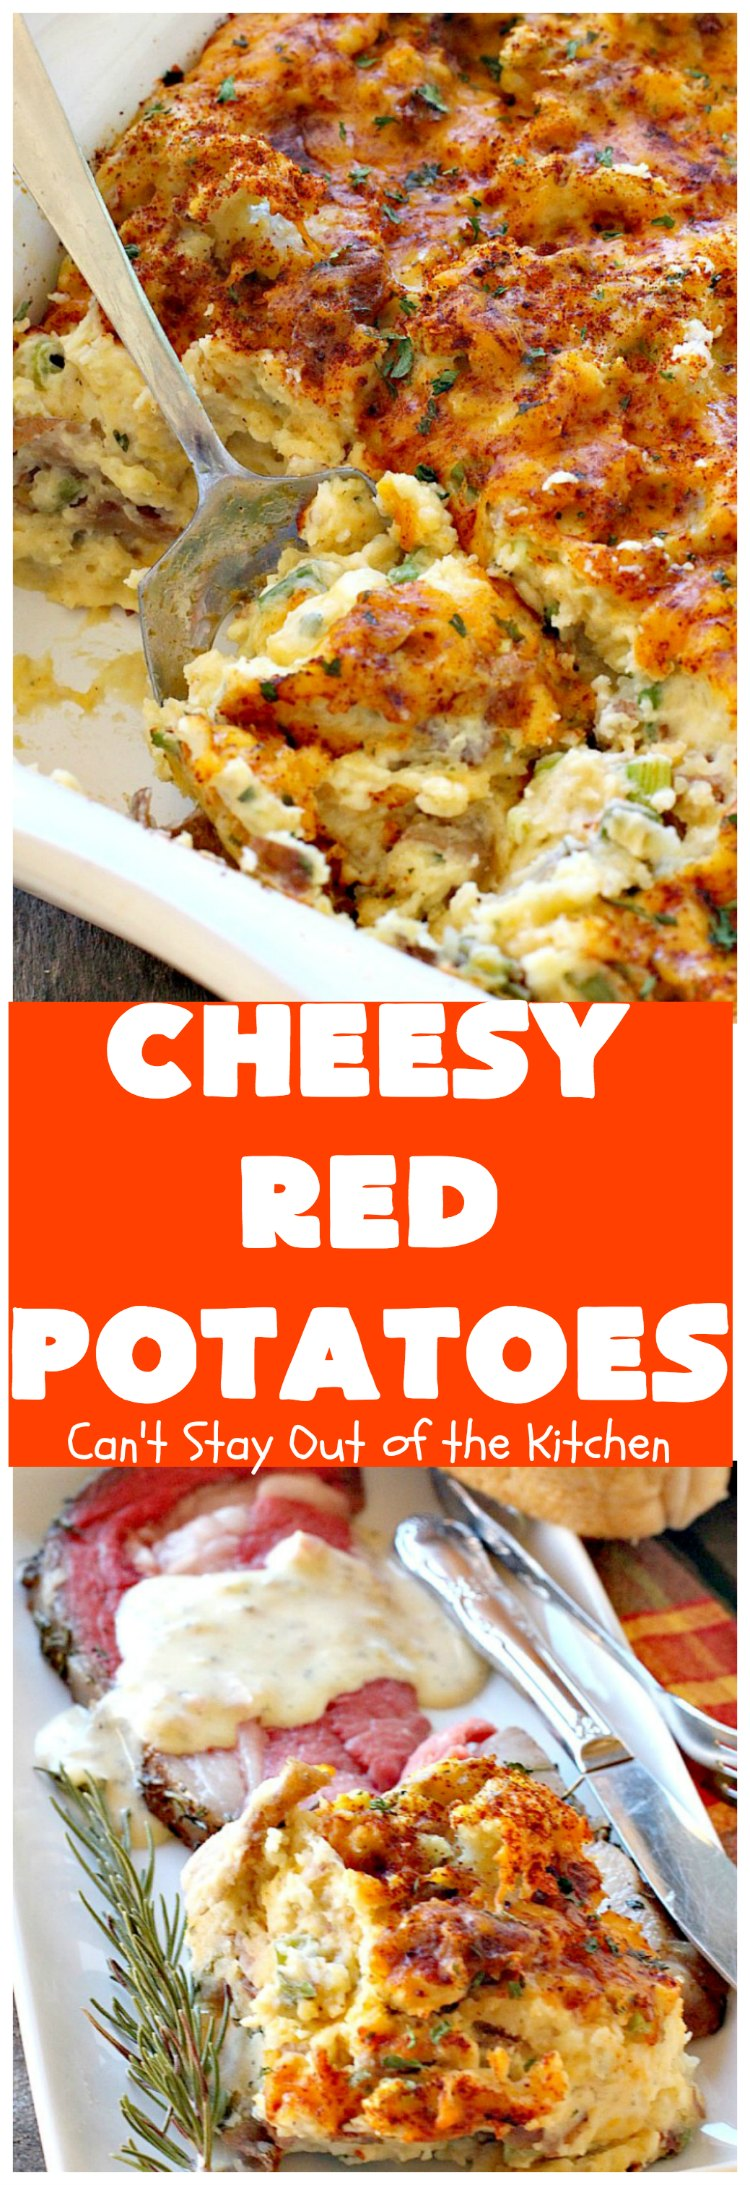 Cheesy Red Potatoes | Can't Stay Out of the Kitchen